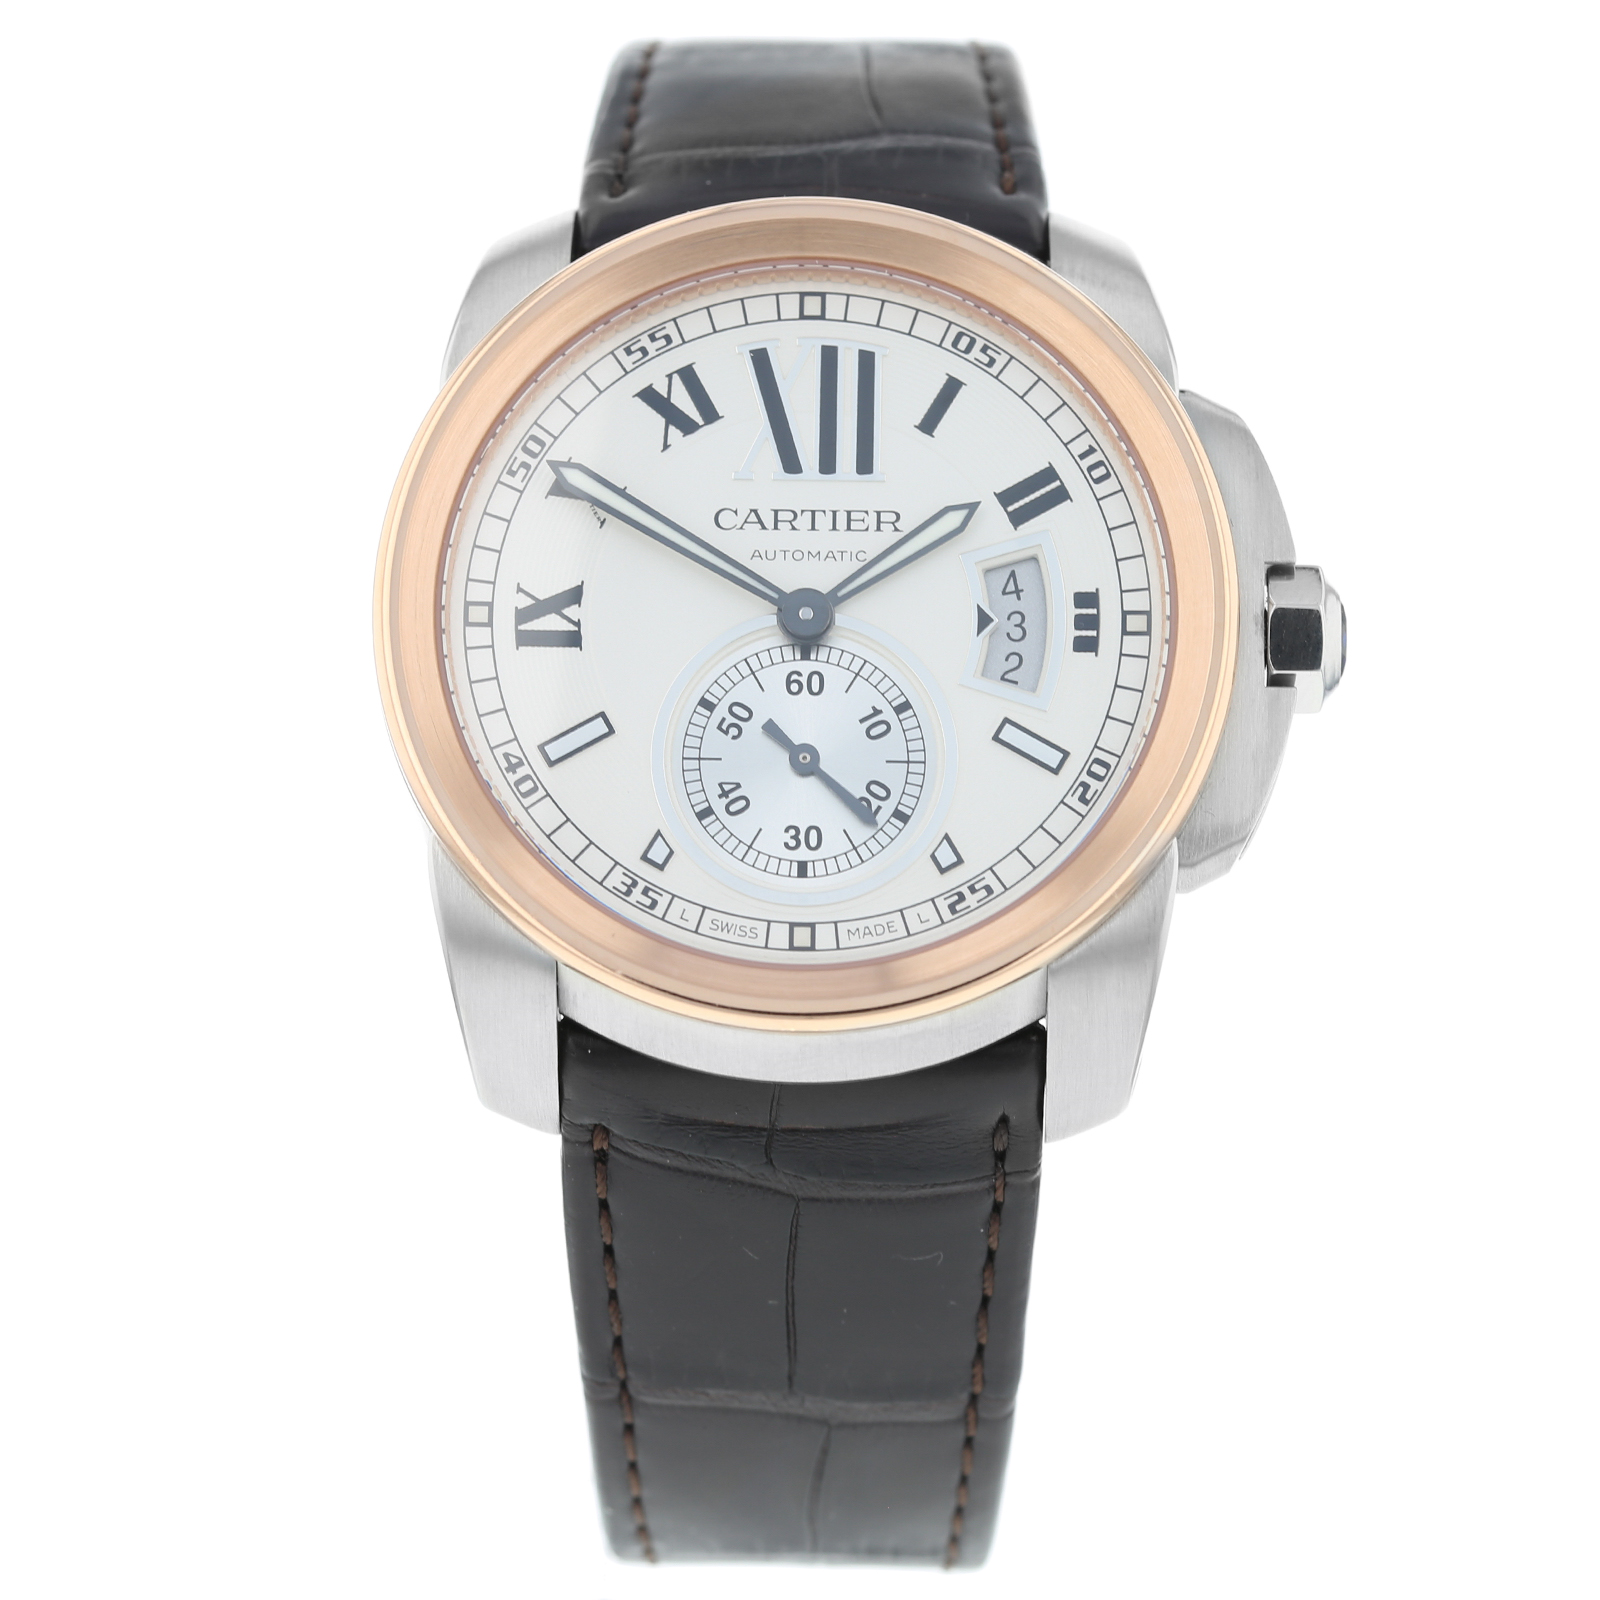 4a0c5f8640d Pre-Owned Calibre de Cartier Mens Watch 3389